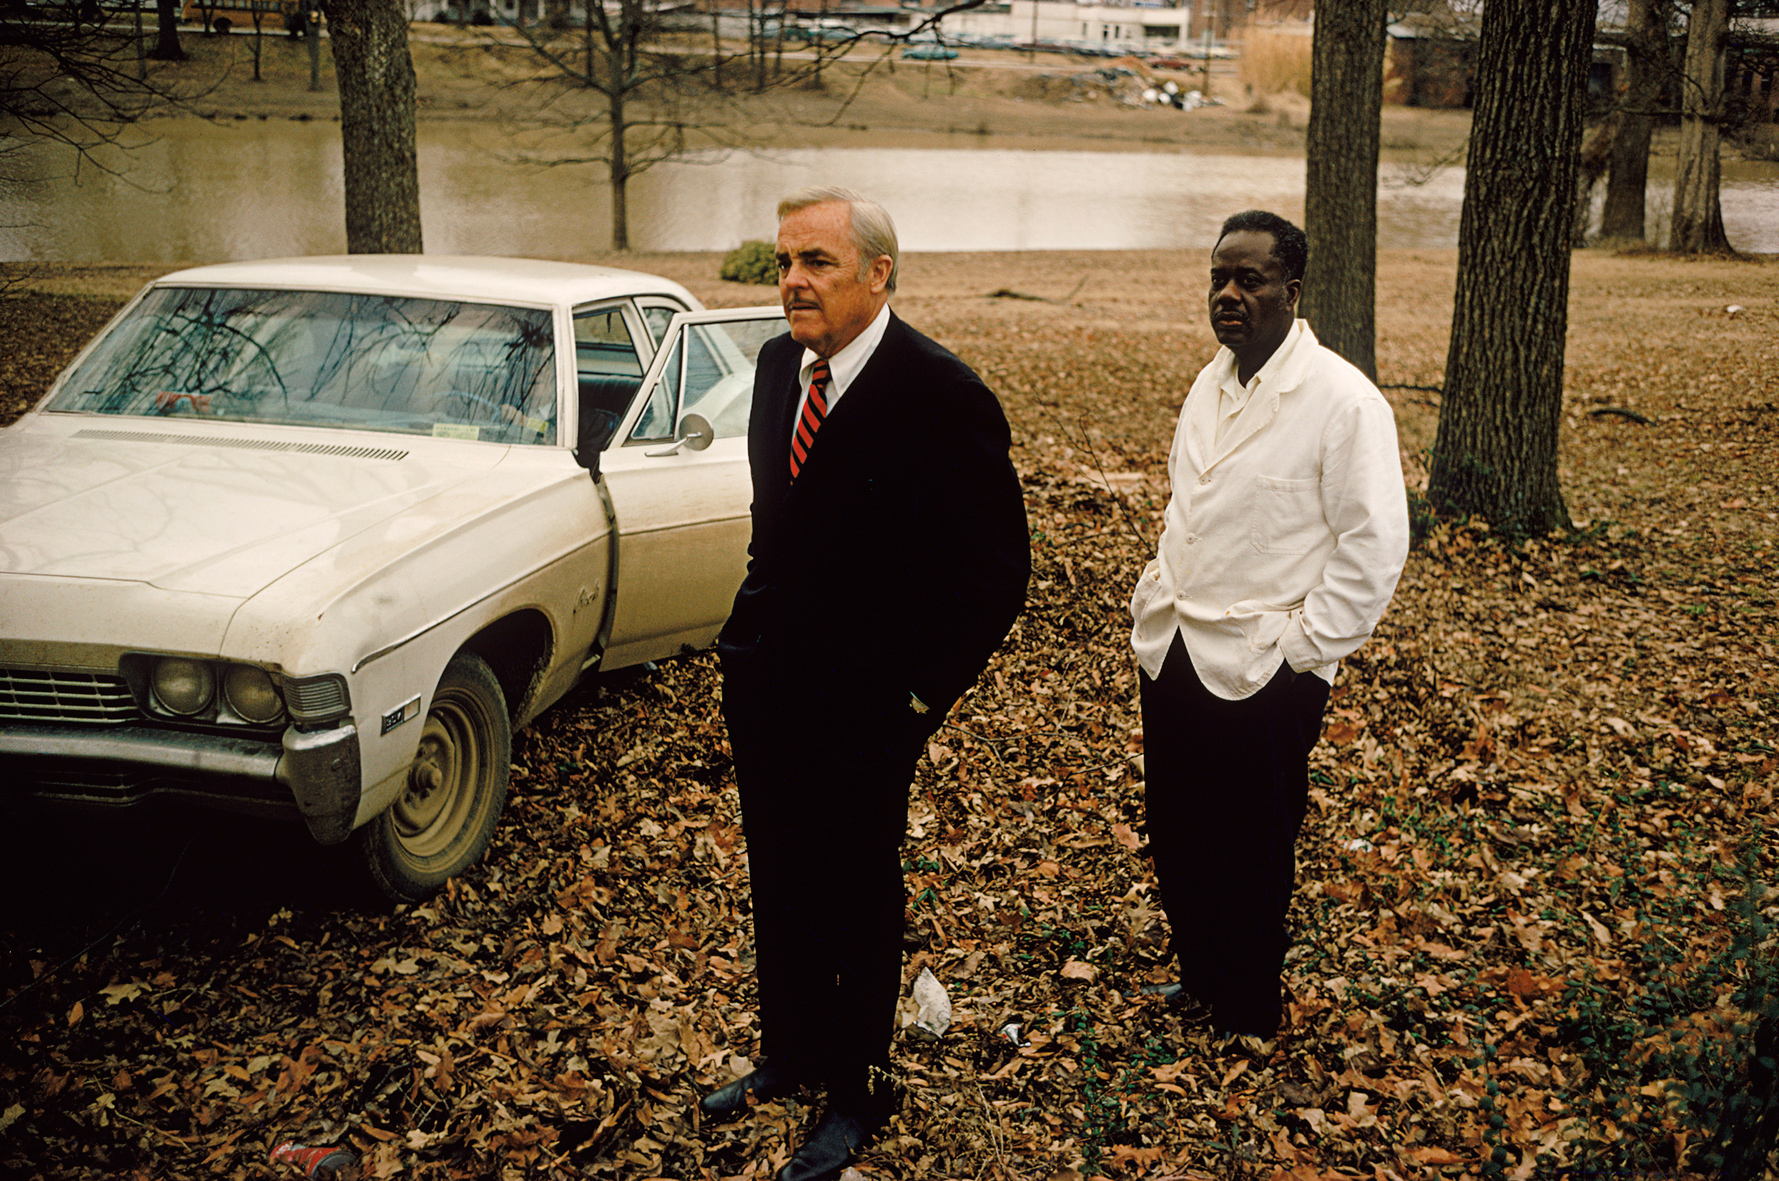 Sumner, Mississippi, com o riacho Cassidy ao fundo, c. 1969 // do livro Guia de William Eggleston, 1976